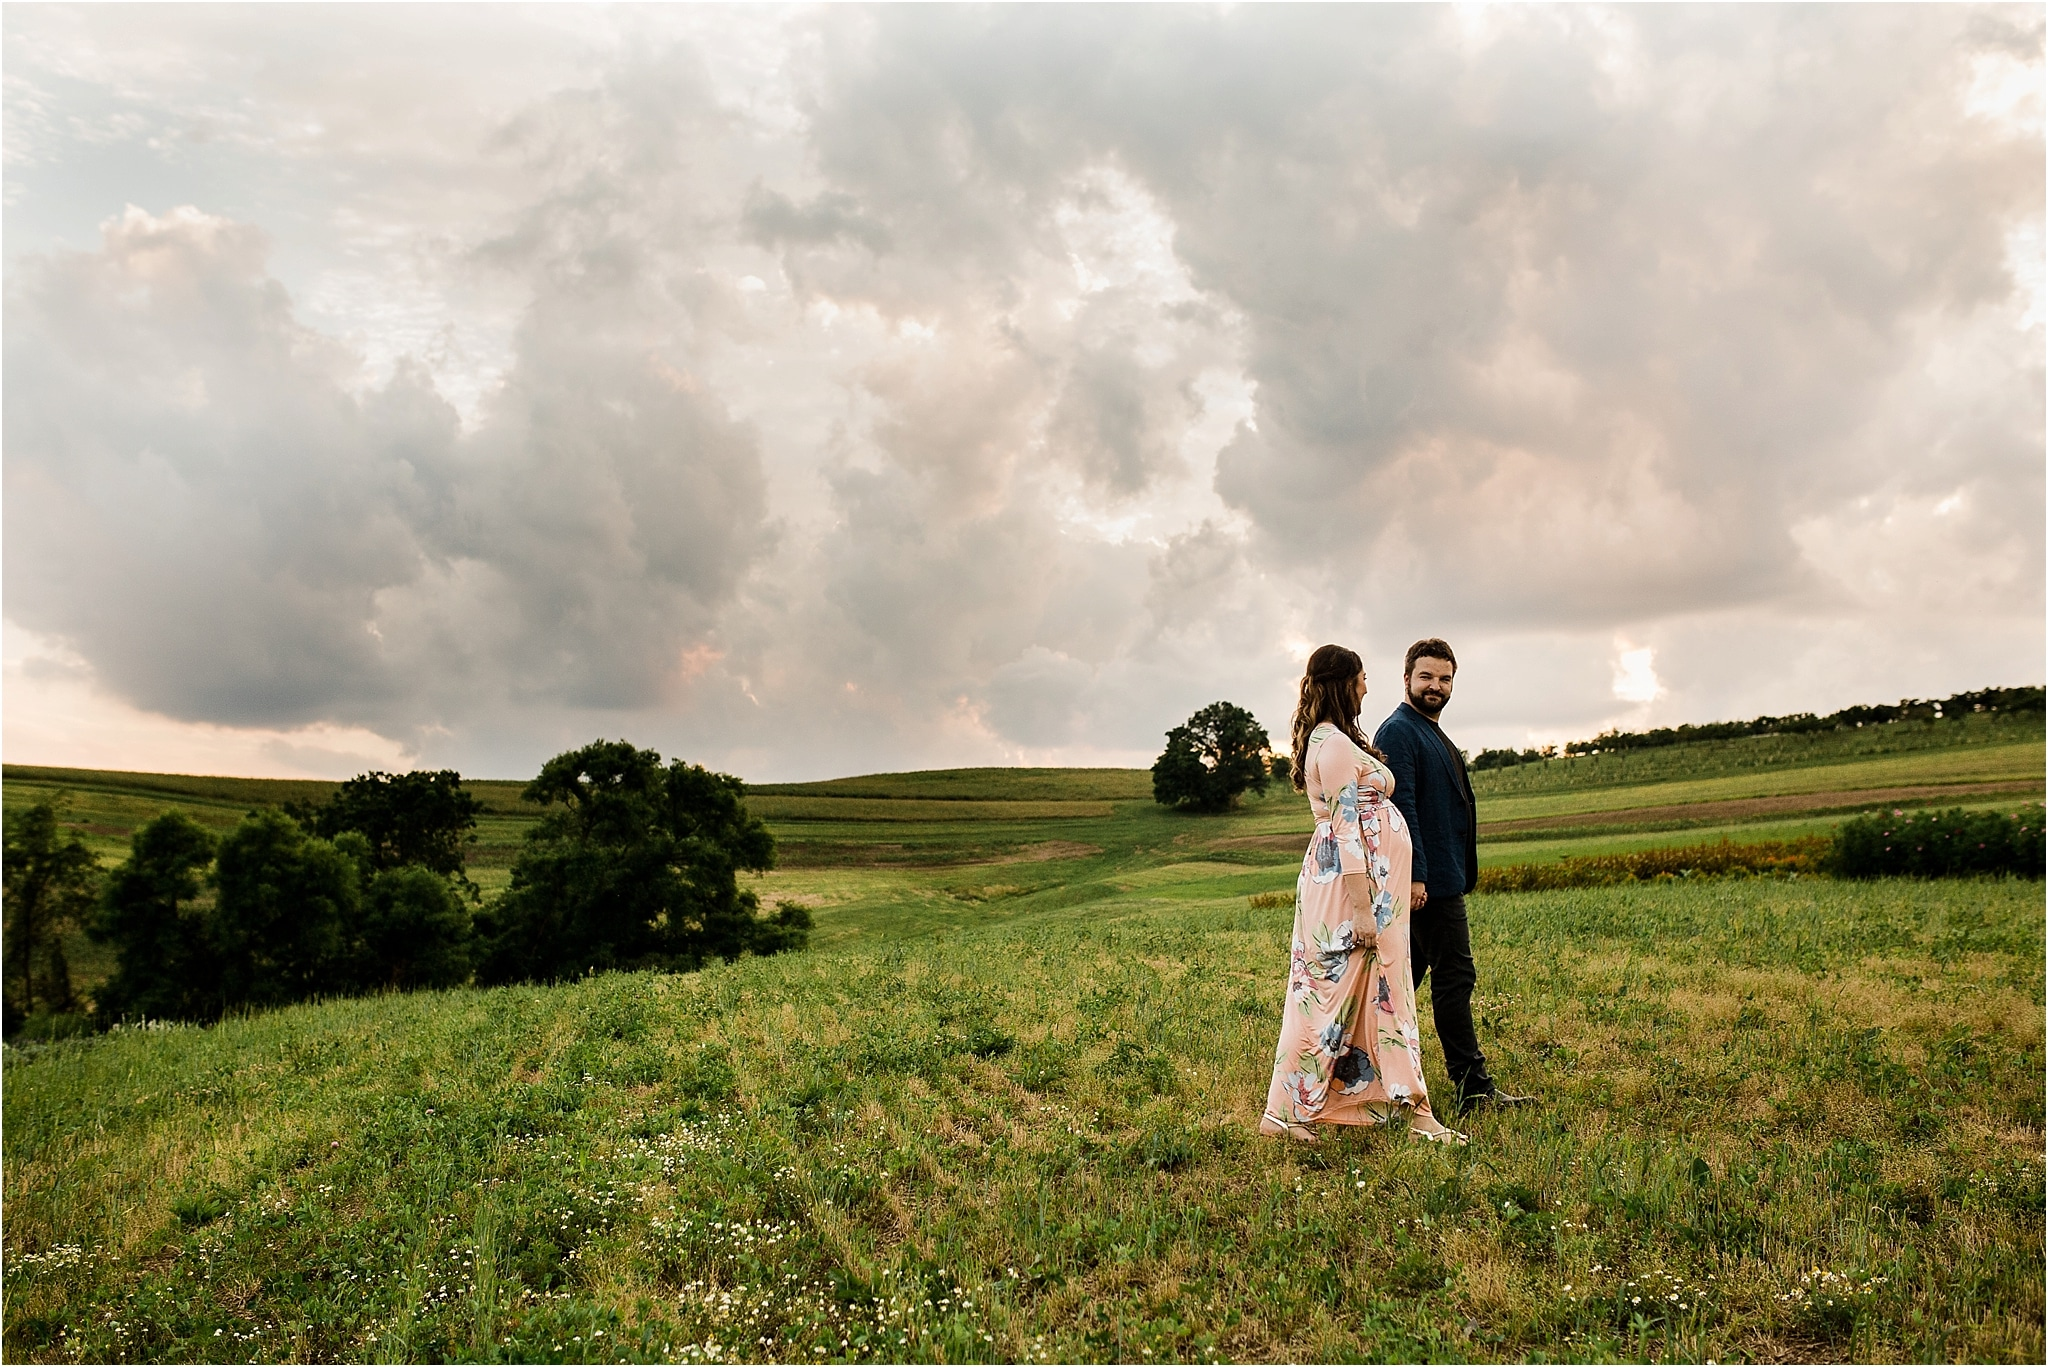 Husband and wife maternity photos at Pittsburgh farm